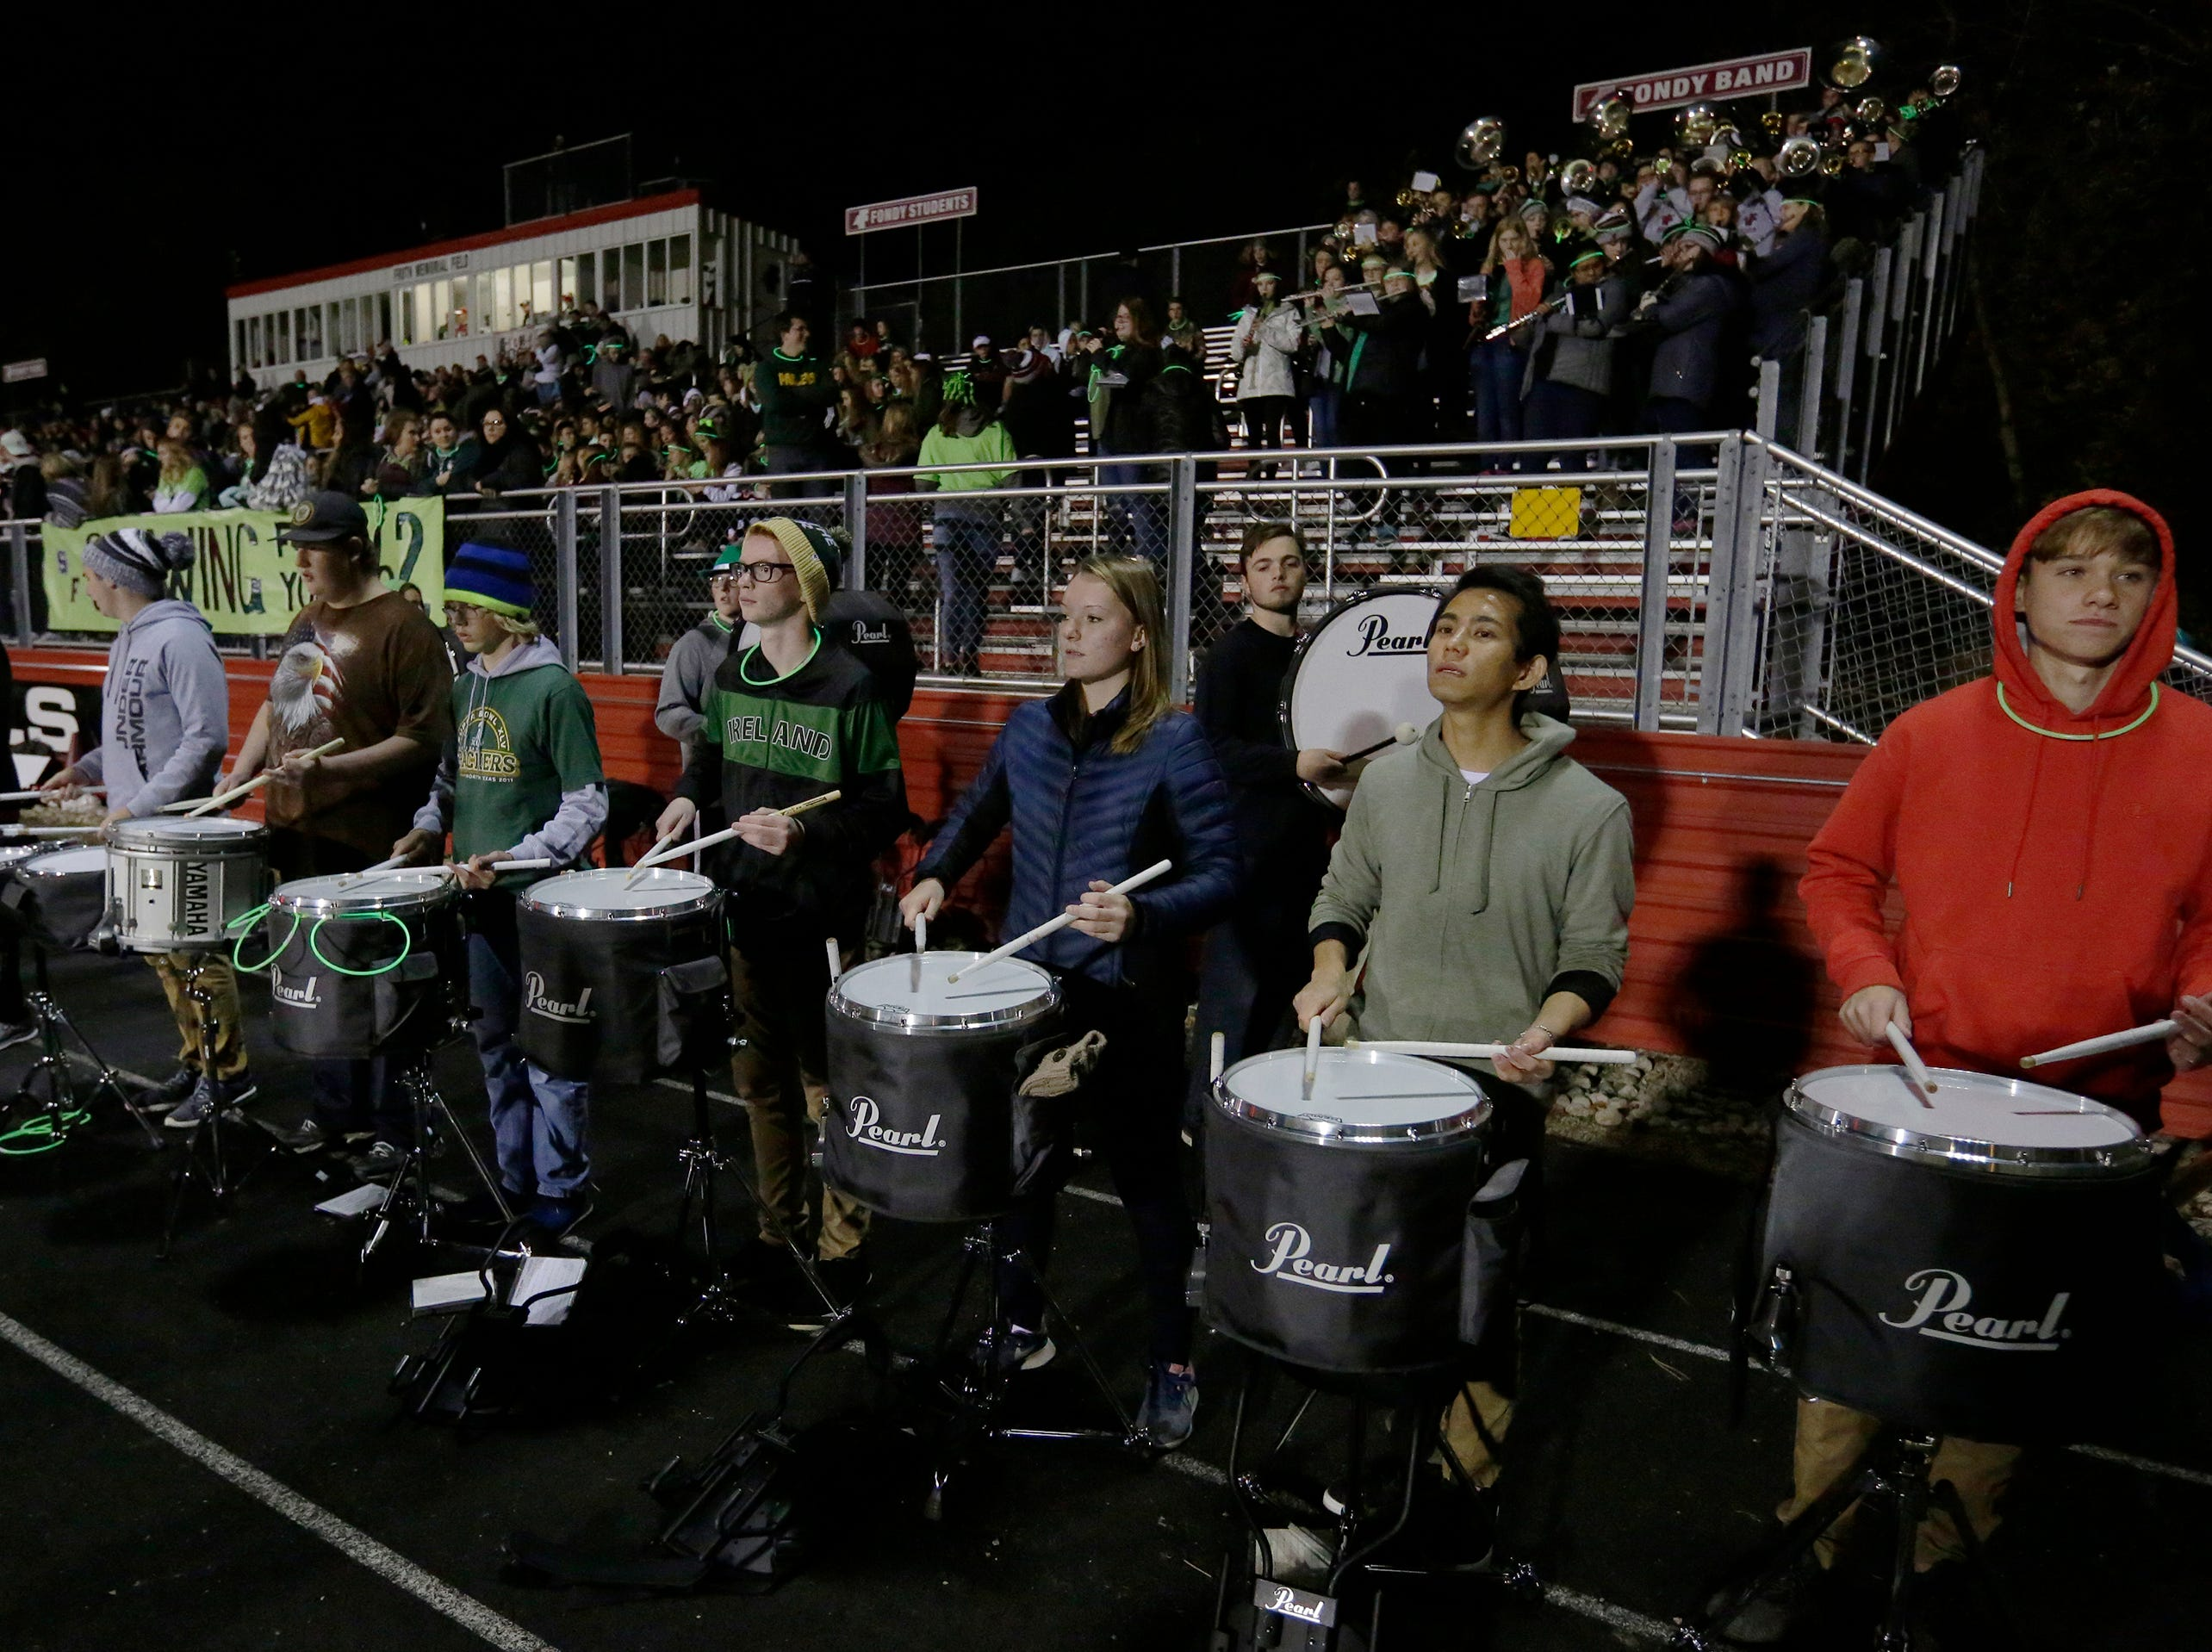 The Fond du Lac band played pregame and at the half during the game.  Fond du Lac Cardinals played Arrowhead Warhawks in WIAA football playoff sectionals, Friday, Oct. 26, 2018, at Fruth Field in Fond du Lac.Joe Sienkiewicz/USA Today NETWORK-Wisconsin